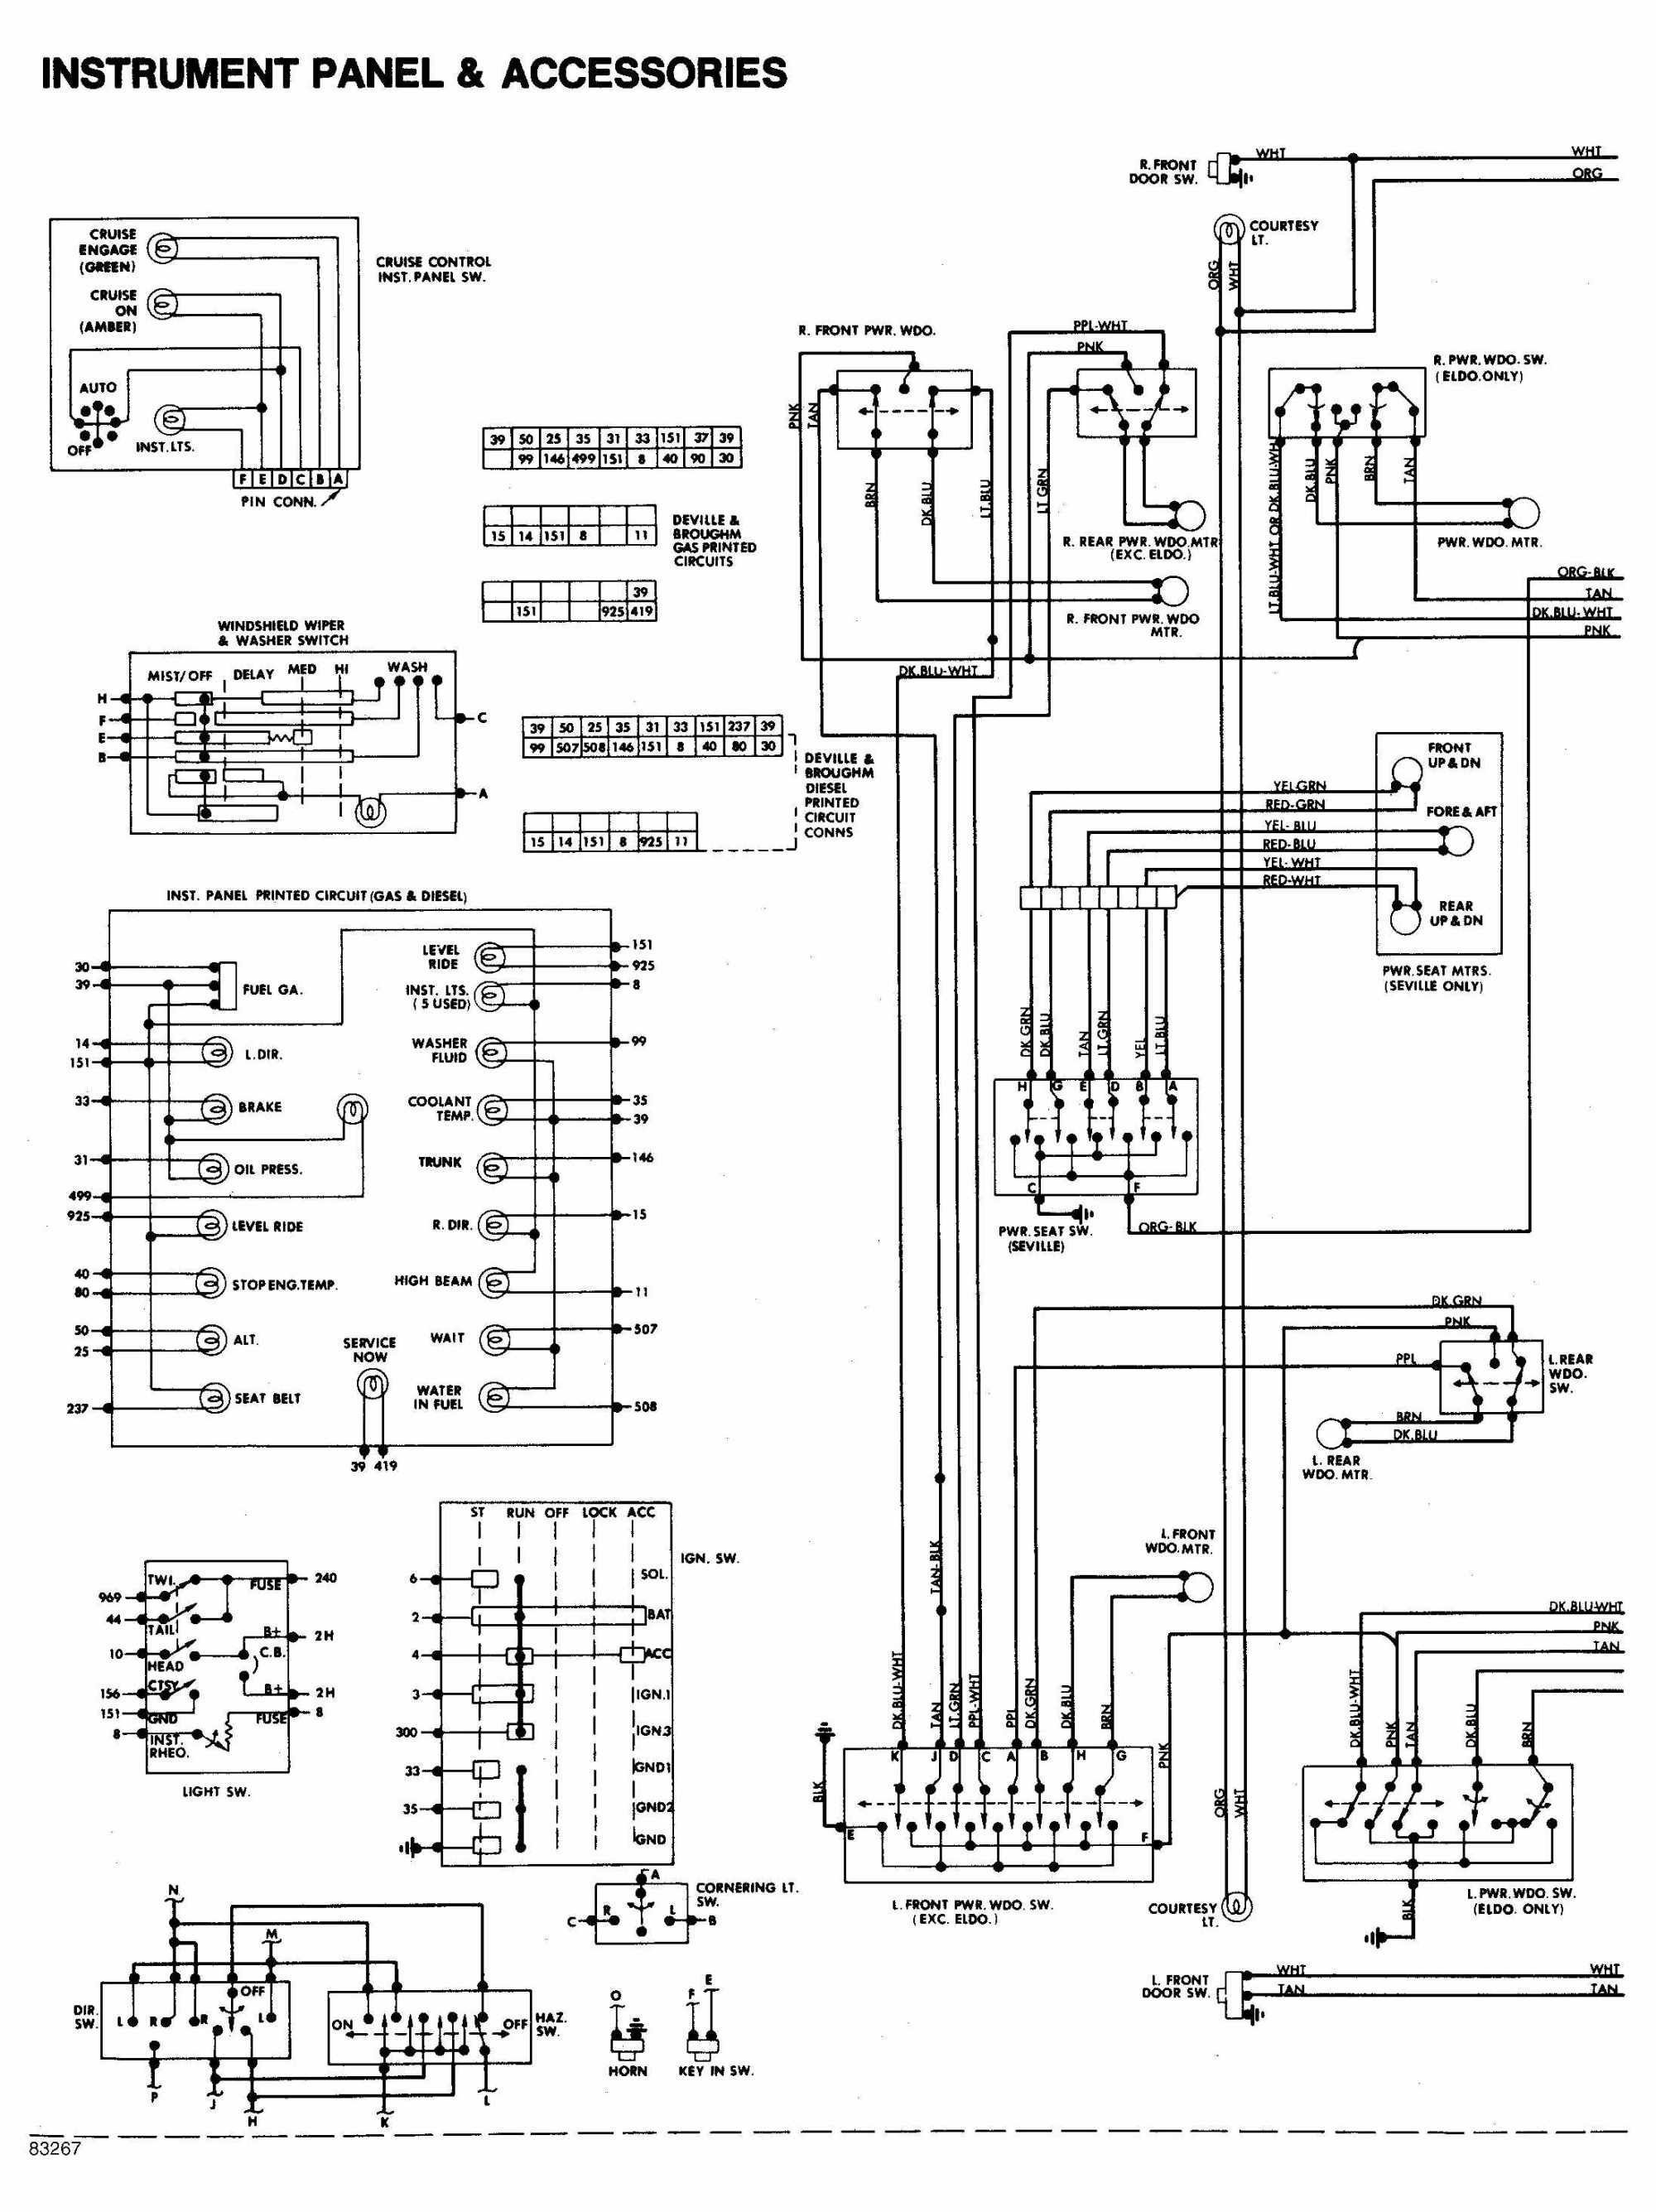 hight resolution of rear window 2000 vw jetta wiring diagram wiring diagrams scematic vw type 2 wiring diagram 1987 vw jetta wiring diagram